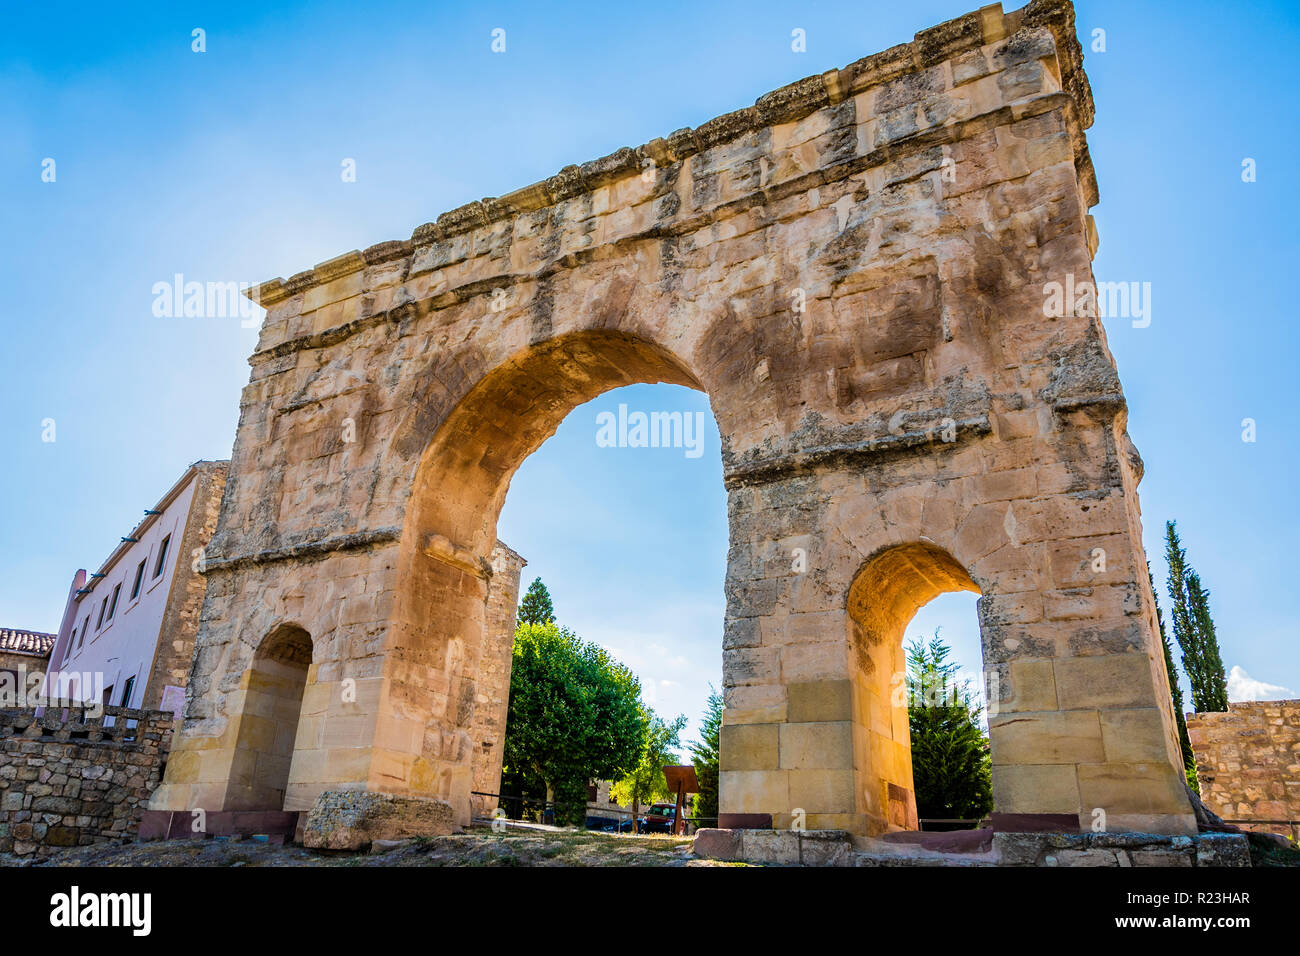 Close-up of a Roman arch from the time of the Emperor Trajan, the only one remaining from three spans in Spanish territory and the town of Medinaceli  - Stock Image